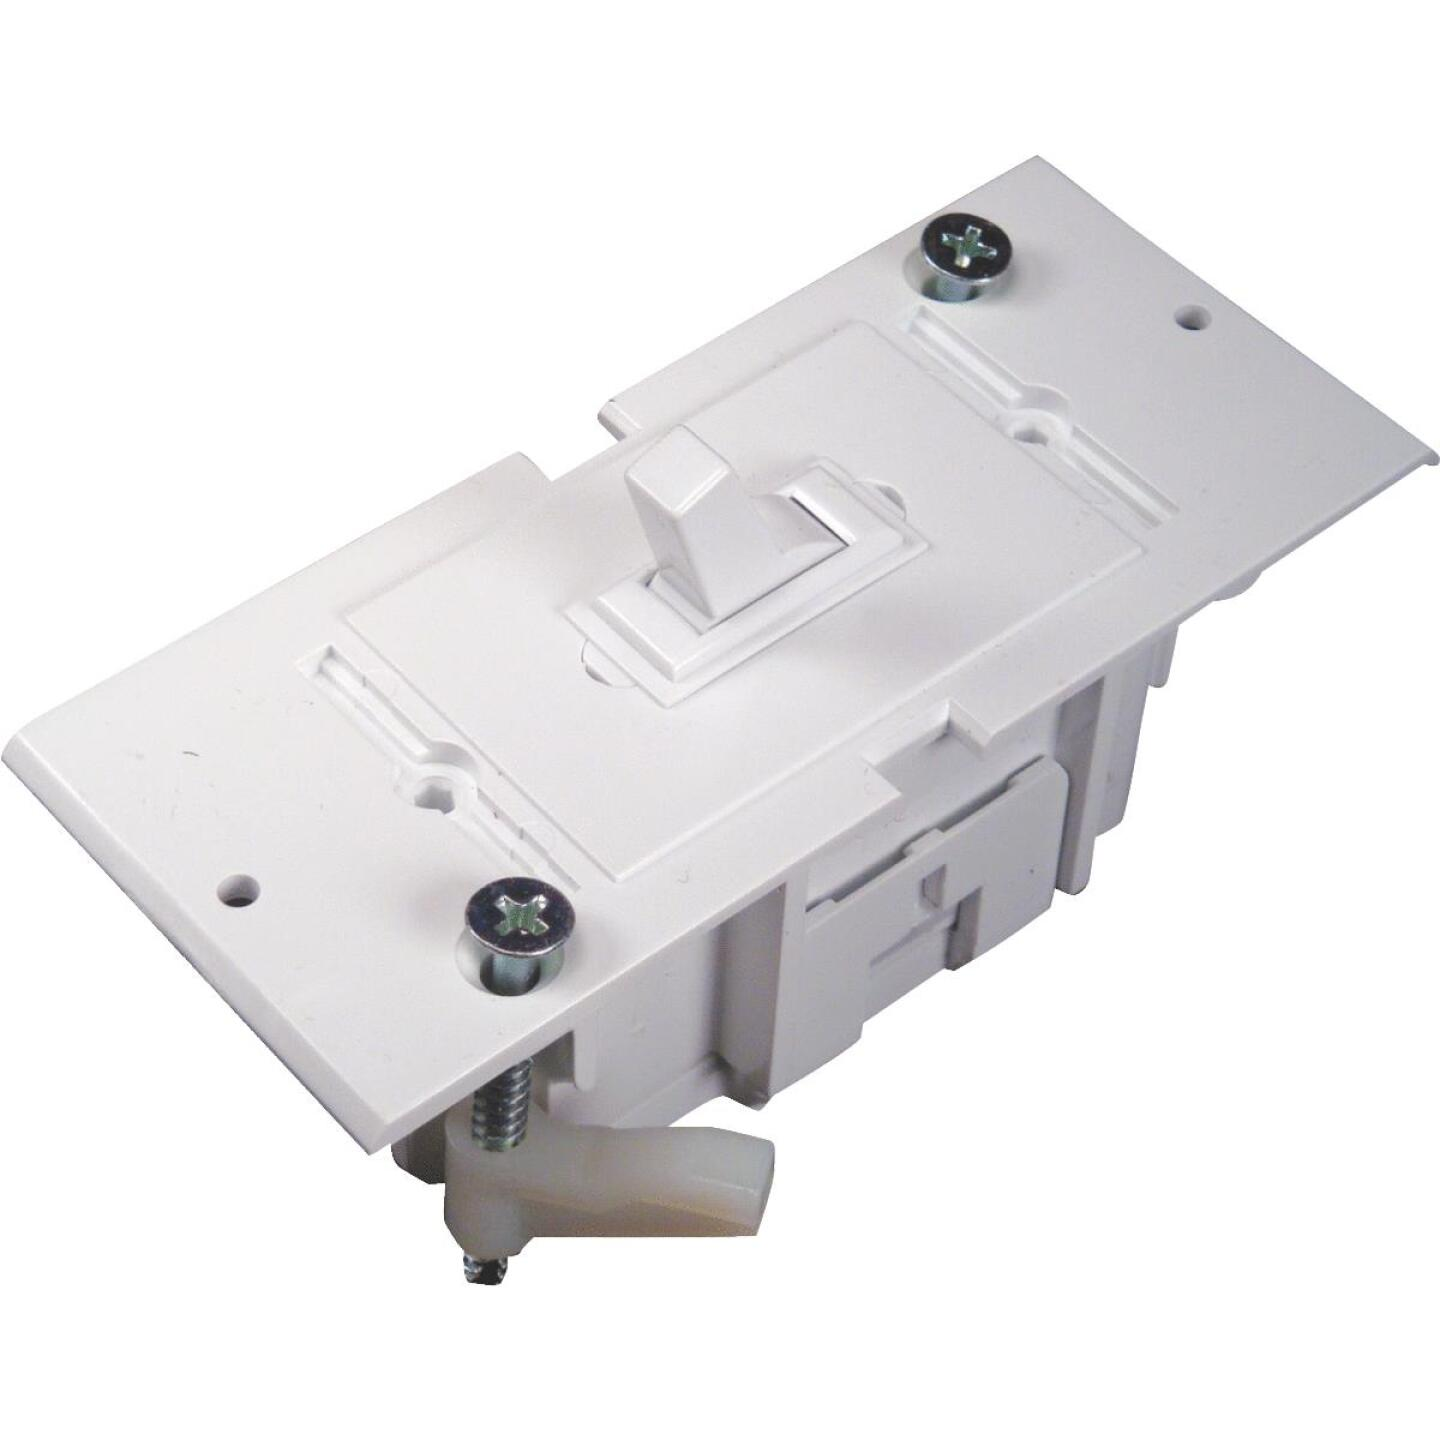 United States Hardware Conventional Electrical Switch Image 1